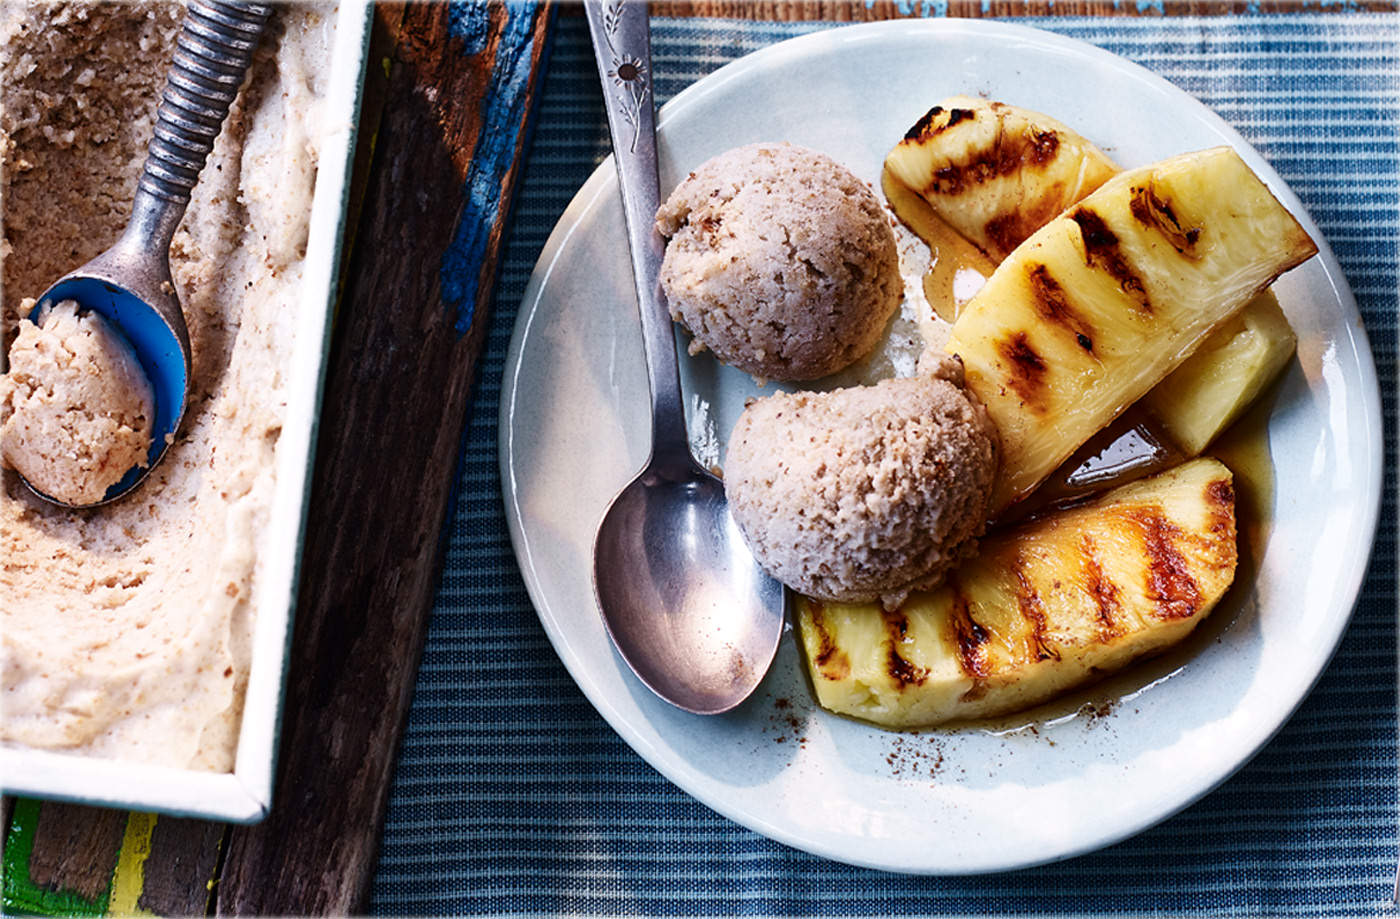 Griddled pineapple with smoked bread and banana ice cream